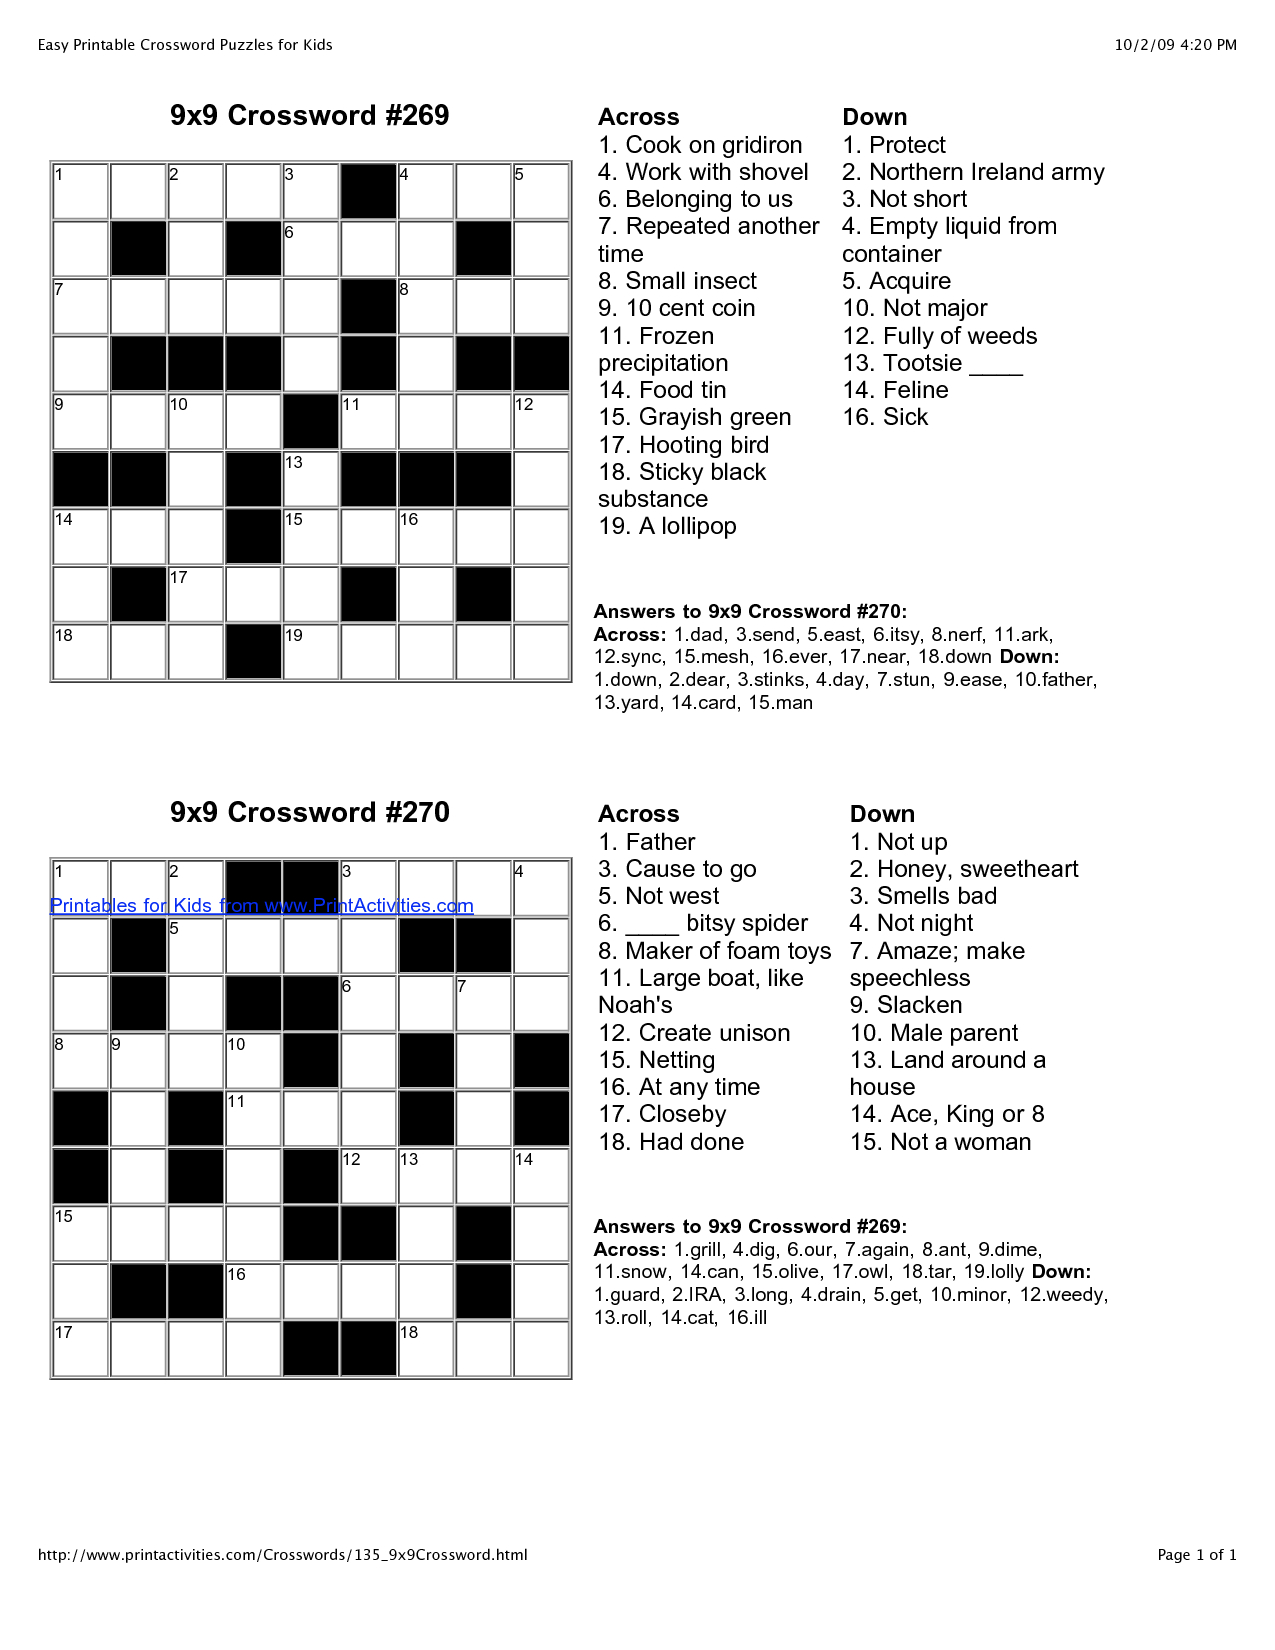 Printable Crosswords For 15 Year Olds